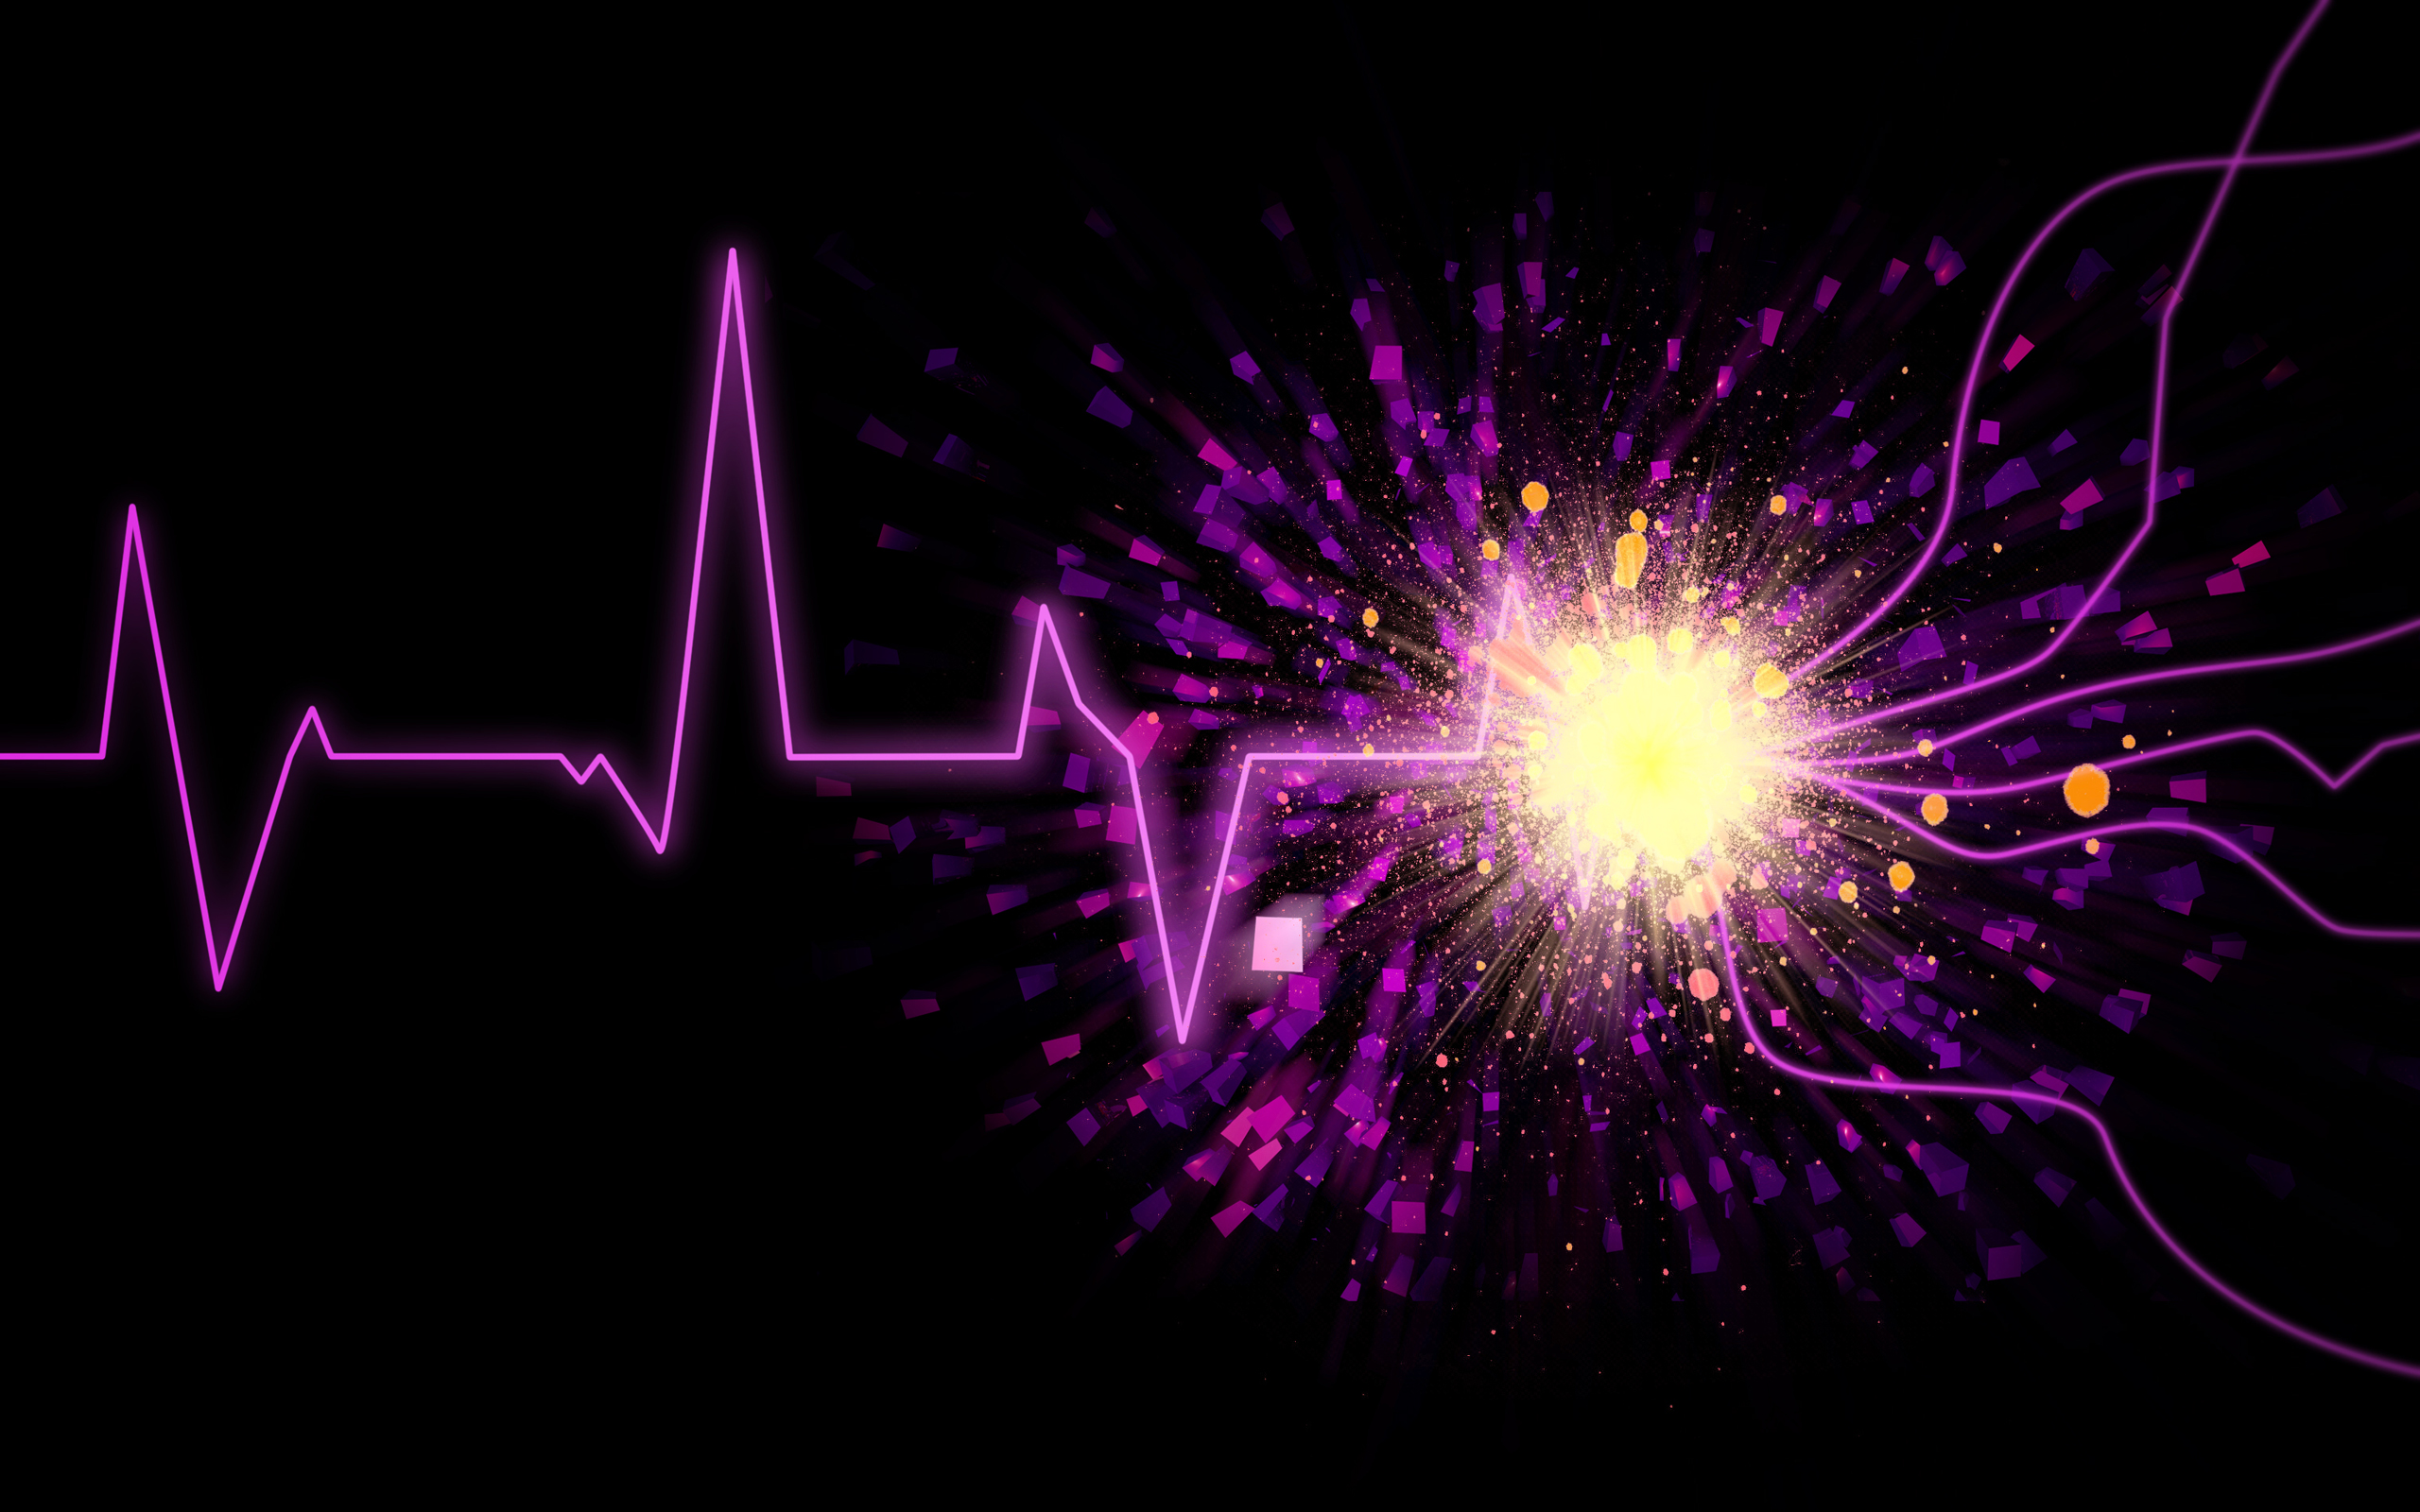 Amazing Wallpaper Music Frequency - Music-Wave-Wallpaper-21  Gallery_172553.jpg